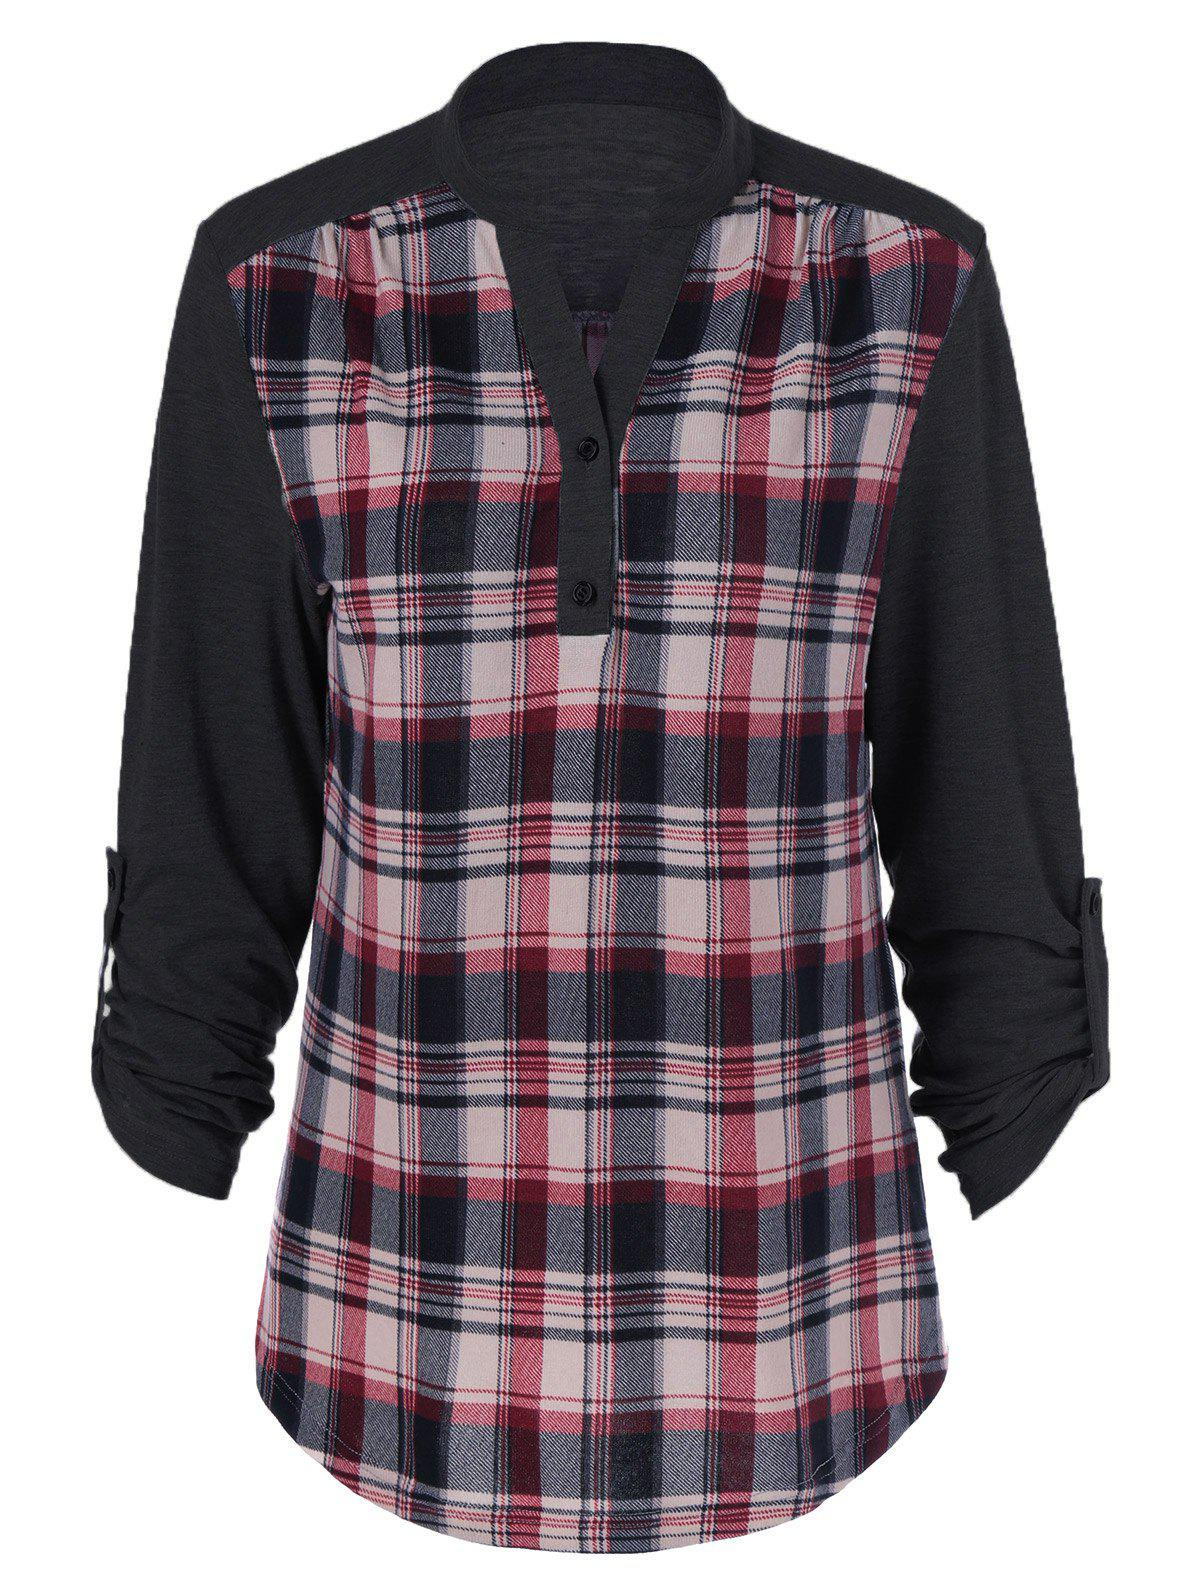 Plaid Patchwork Adjustable Sleeve T-ShirtWOMEN<br><br>Size: M; Color: BLACK; Material: Polyester; Sleeve Length: Full; Collar: Stand-Up Collar; Style: Casual; Pattern Type: Plaid; Season: Fall,Spring; Weight: 0.3800kg; Package Contents: 1 x T-Shirt;